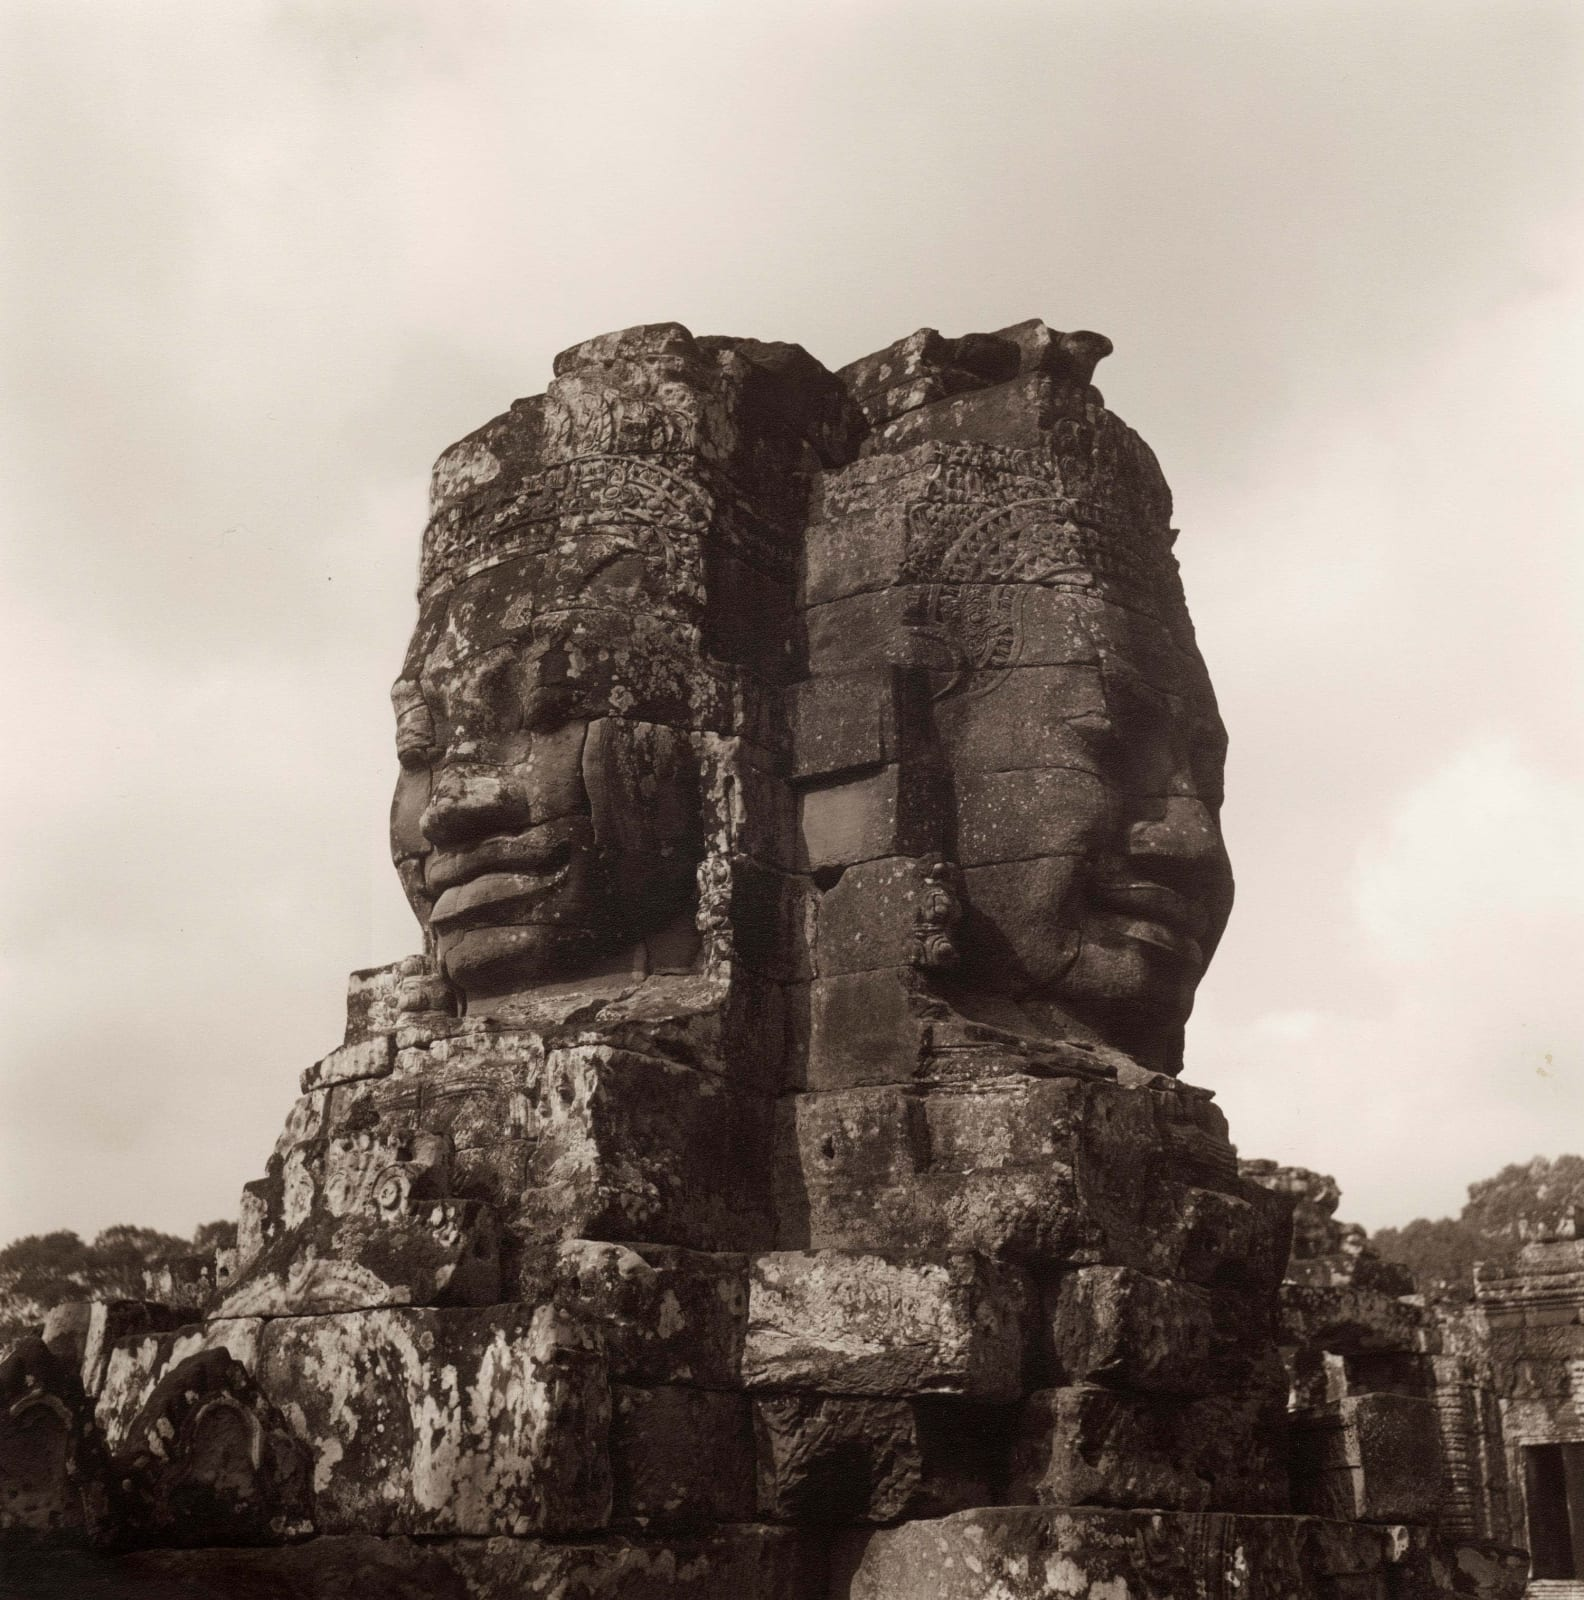 Lynn Davis photograph of two heads carved from mountain at the Bayon, Angkor Wat, Cambodia